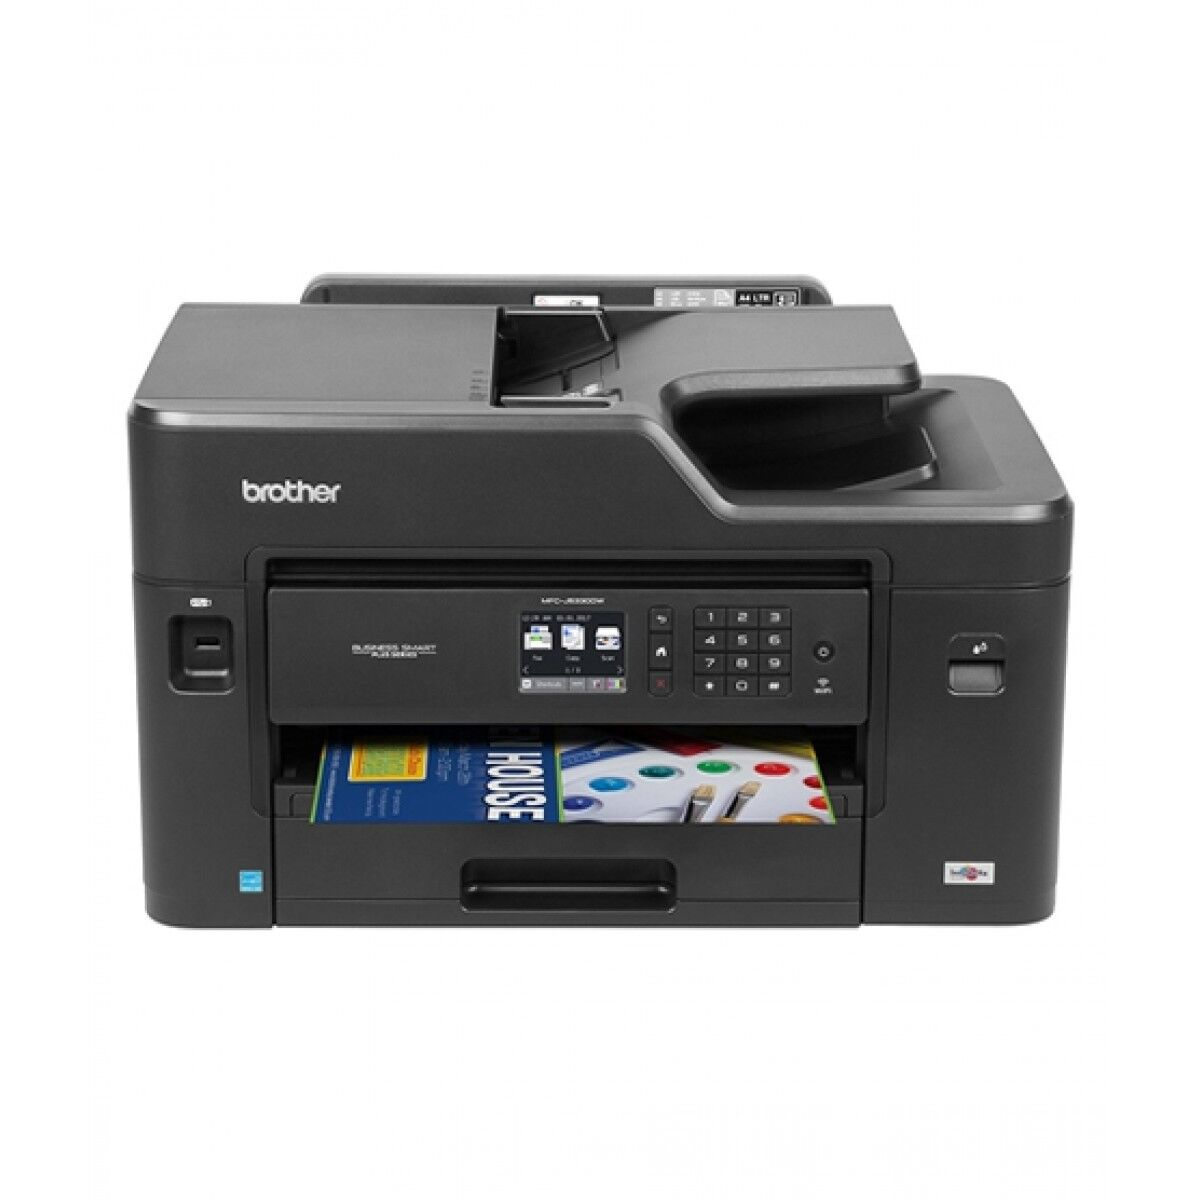 Brother MFC-J5330DW Wireless Inkjet Printer Price in Pakistan | Buy Brother  Business Smart Plus Series All-in-One Printer | iShopping.pk